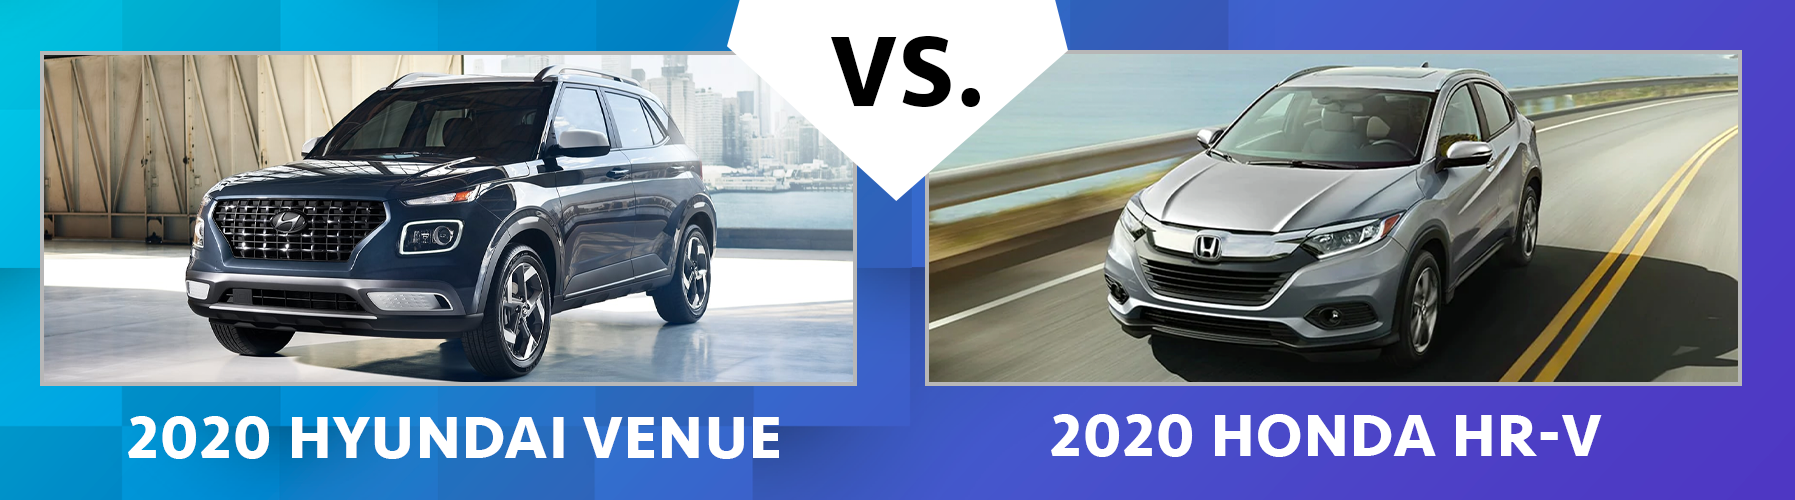 W2020 Venue vs 2020 Honda HR-V Comparisons